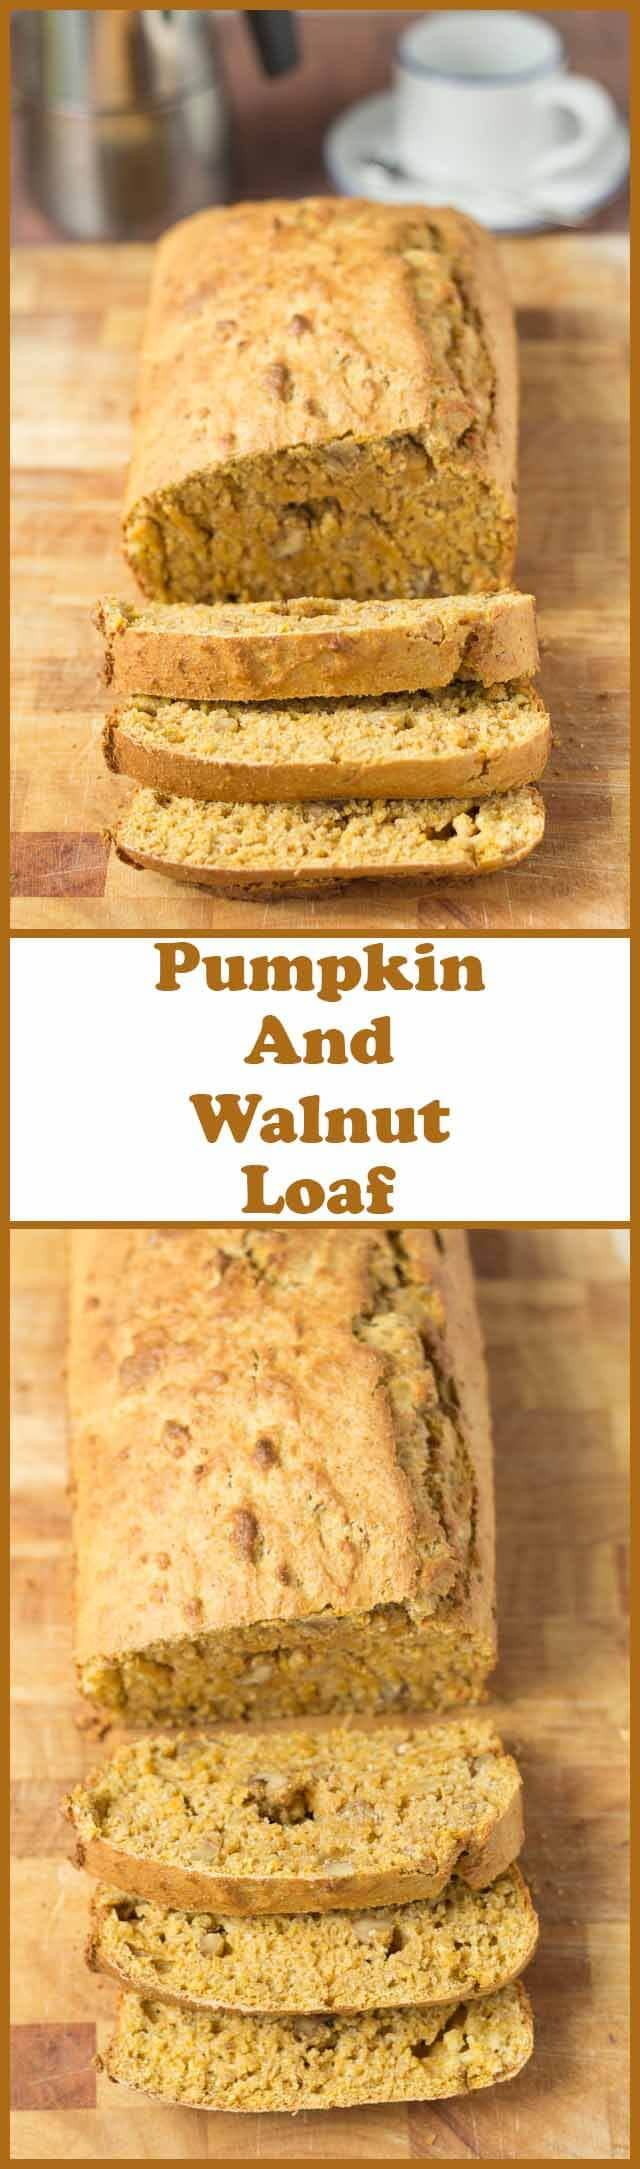 Pumpkin and walnut loaf is adelicious moist pumpkin bread filled with crunchy little pieces of walnut. Made from whole wheat flour this tasty sharing recipe is a healthy way to enjoy pumpkin with friends and family!